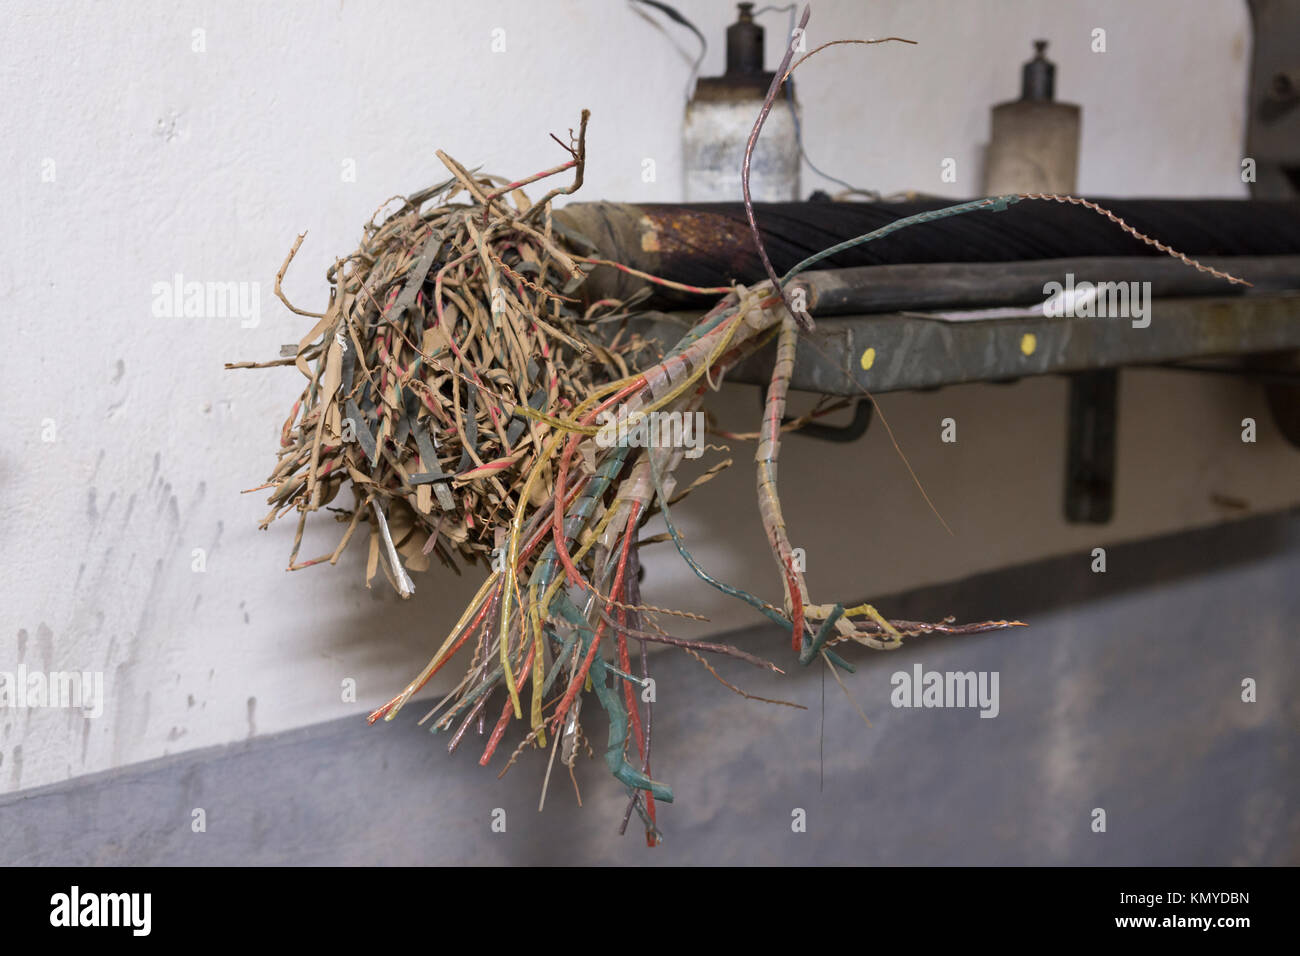 An example of the complex electrical wiring at the Maginot Line site of Four à Chaux de Lembach, Alsace - Stock Image